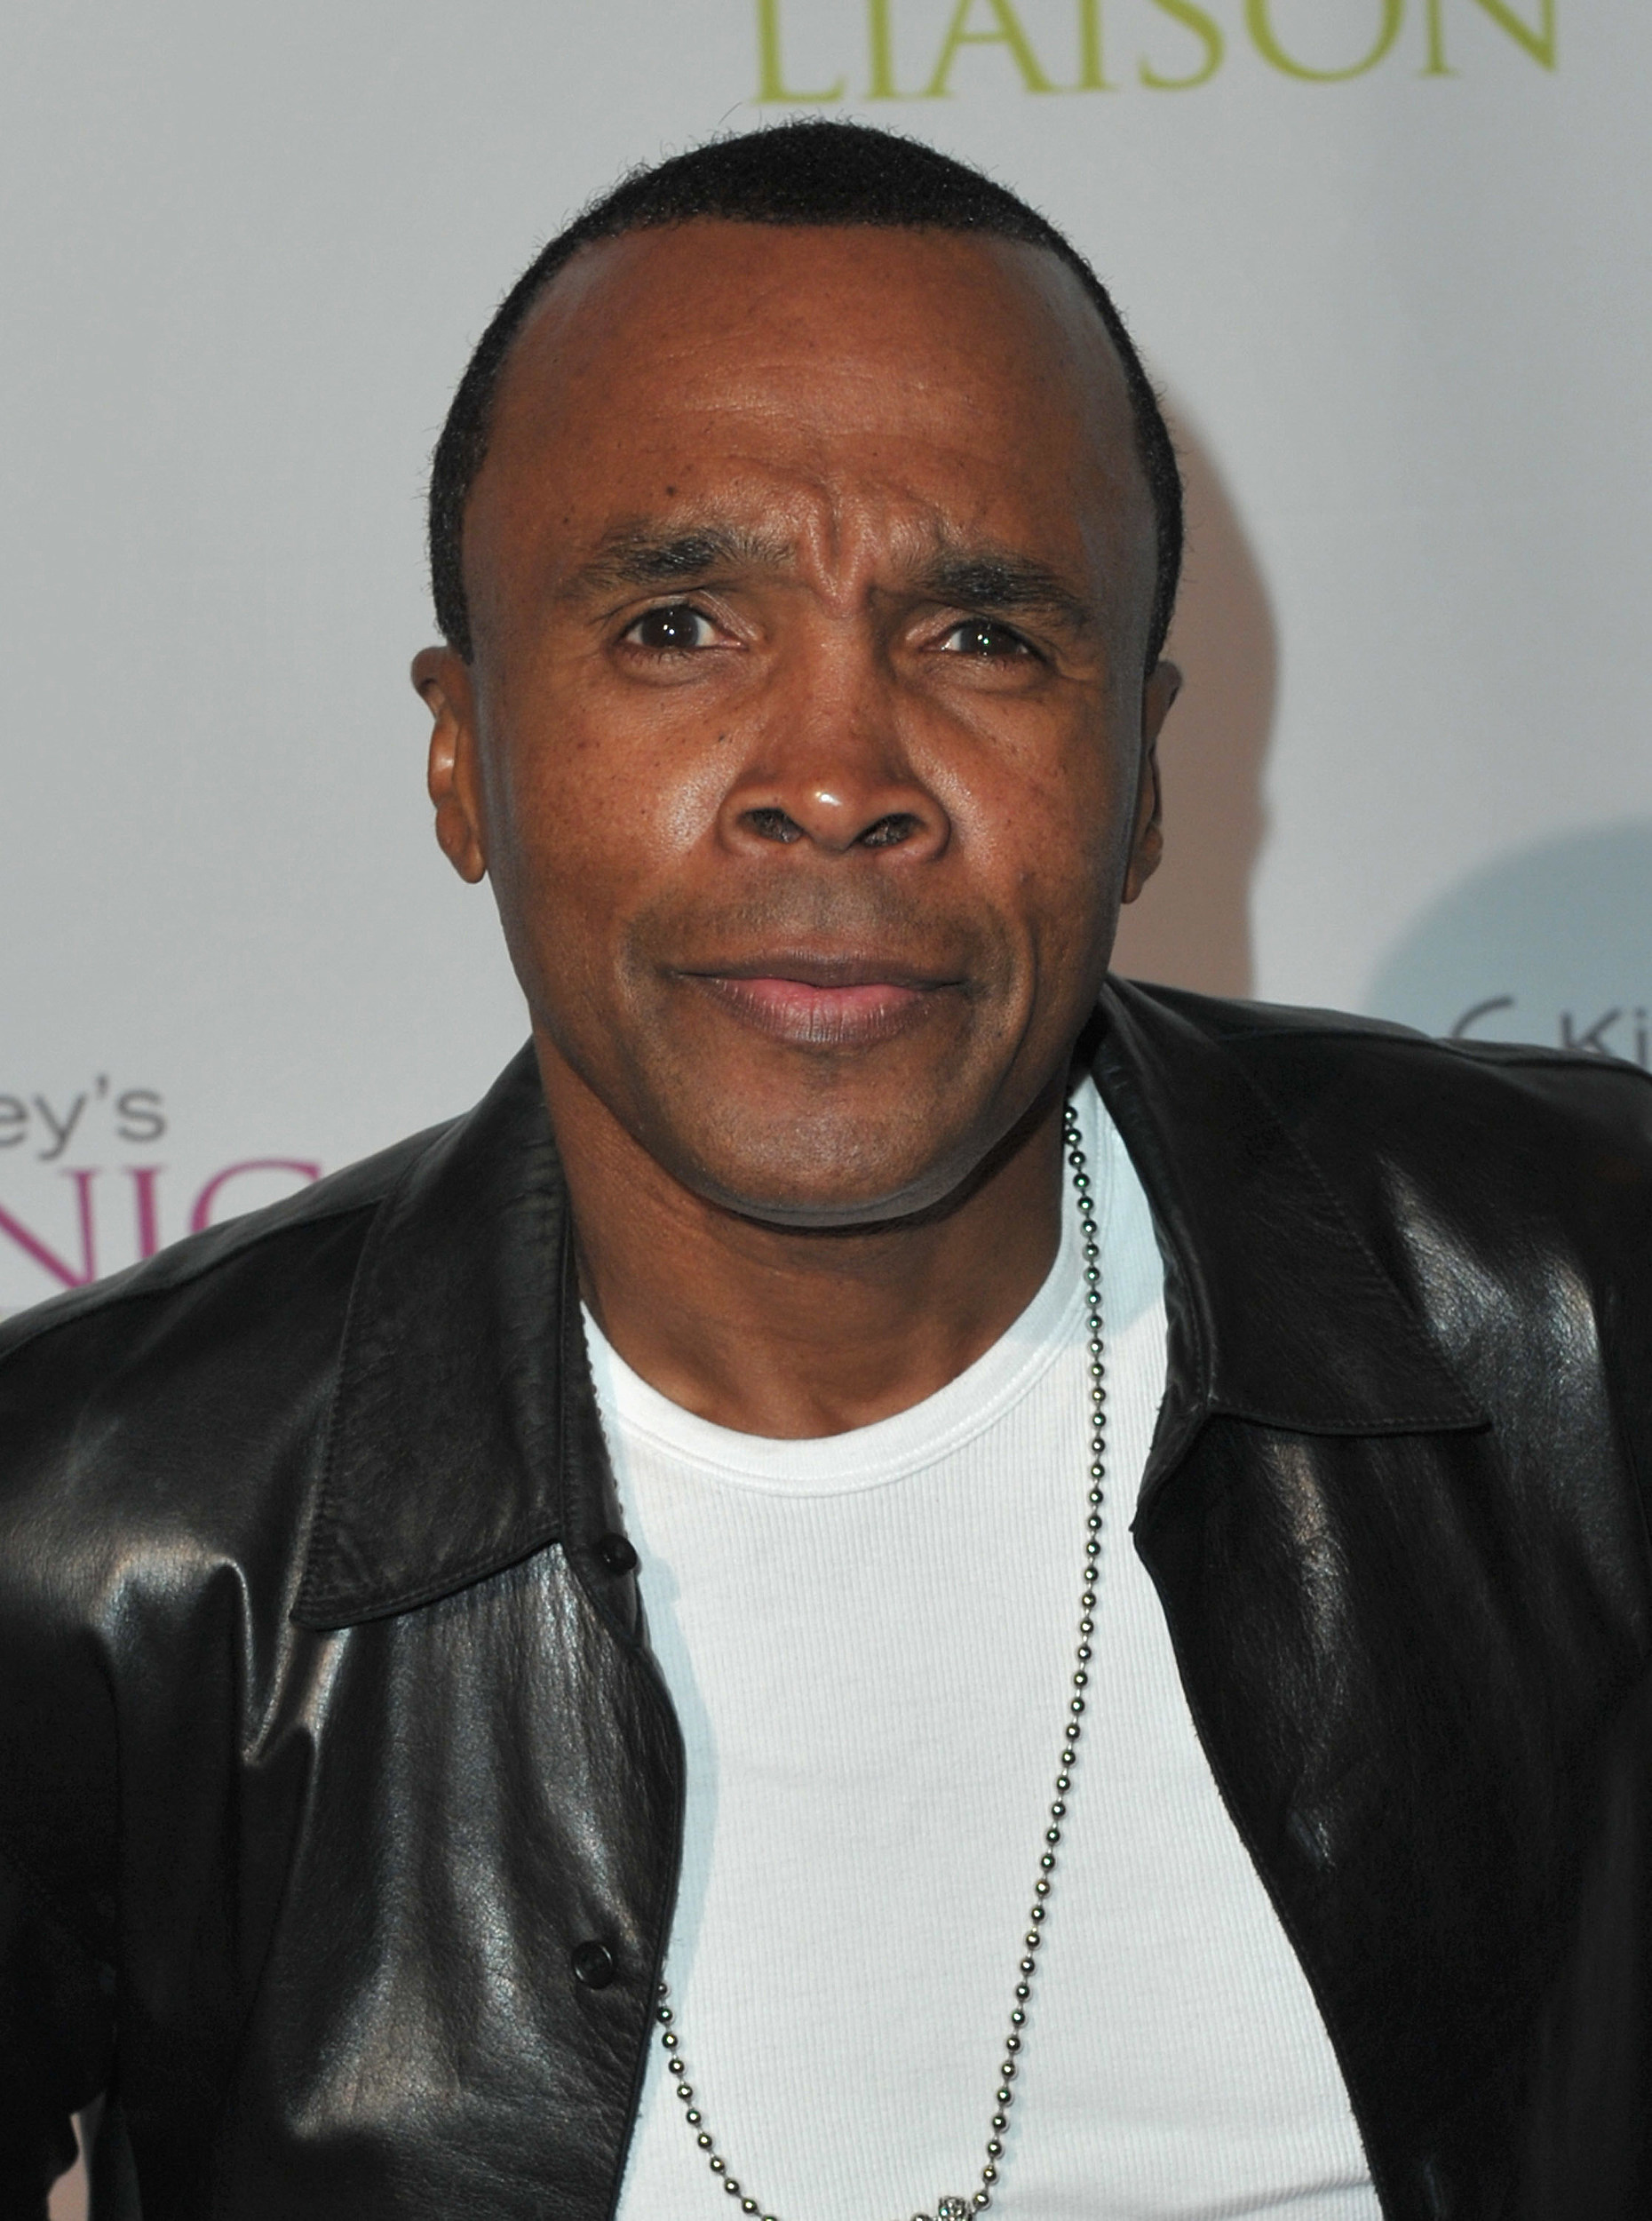 Sugar Ray Leonard Is Voted Off Dancing With The Stars